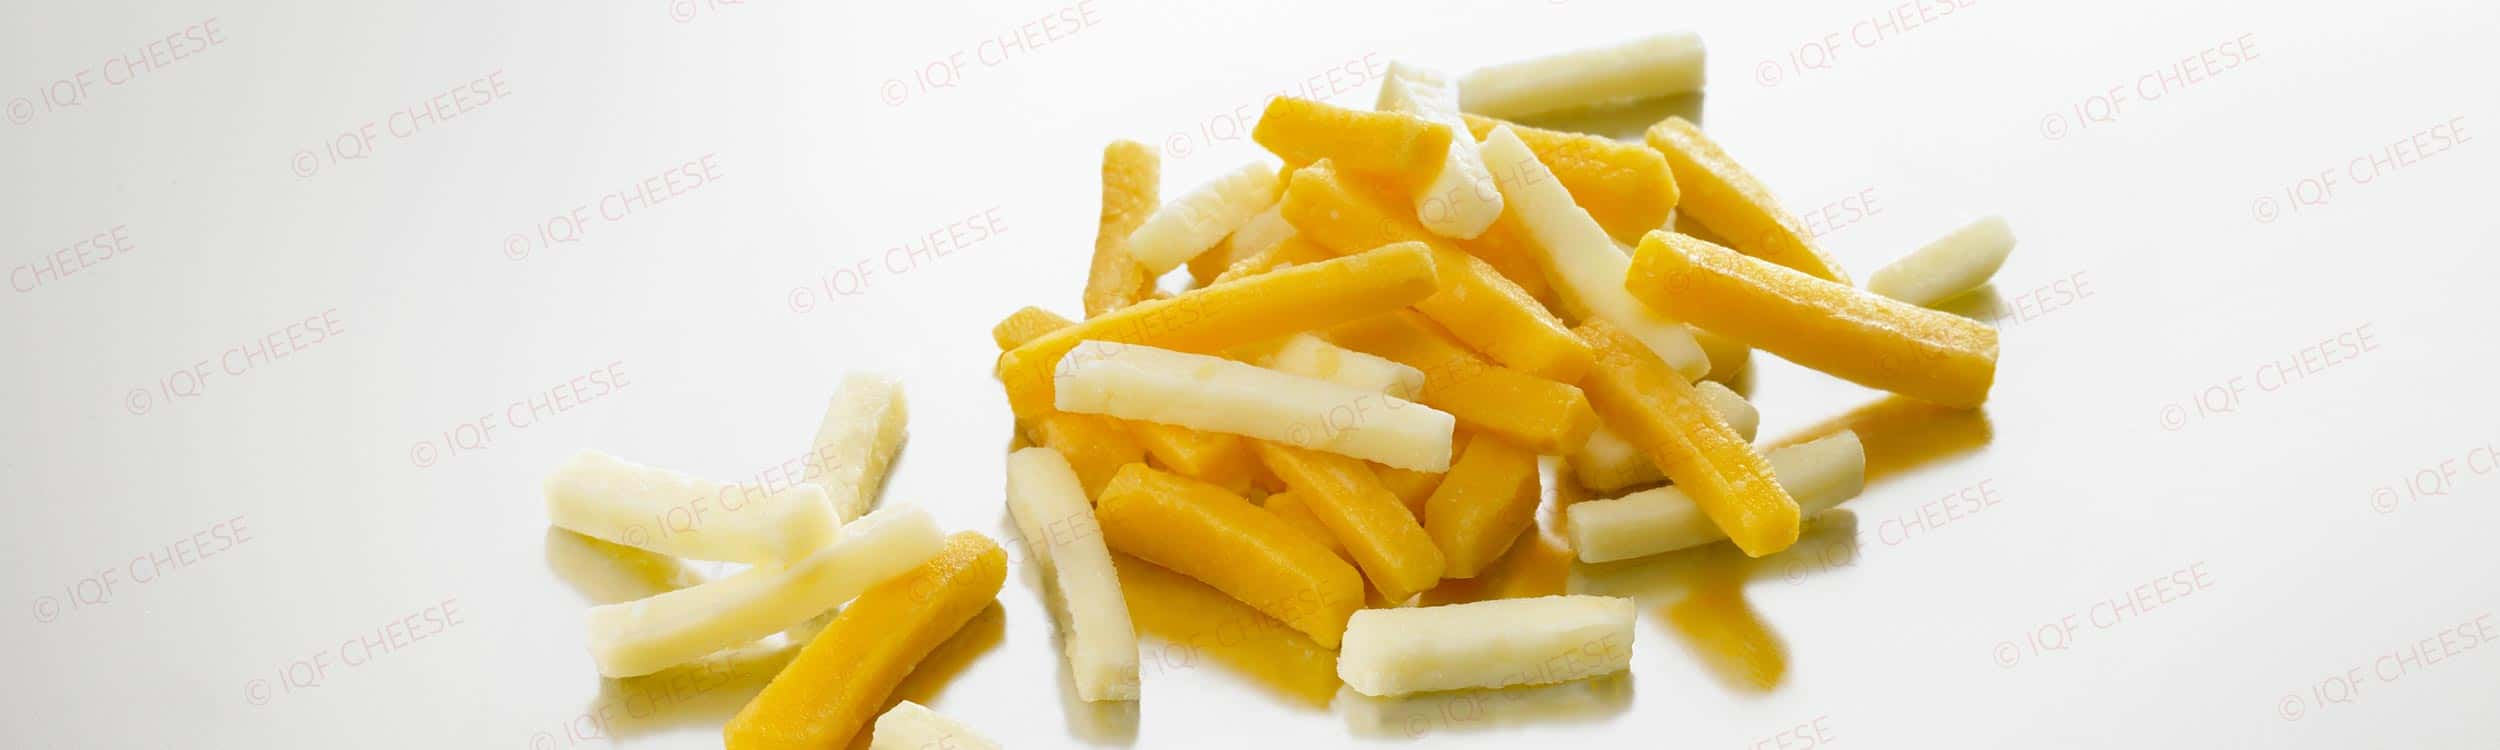 IQF Shredded Bicolor Cheese